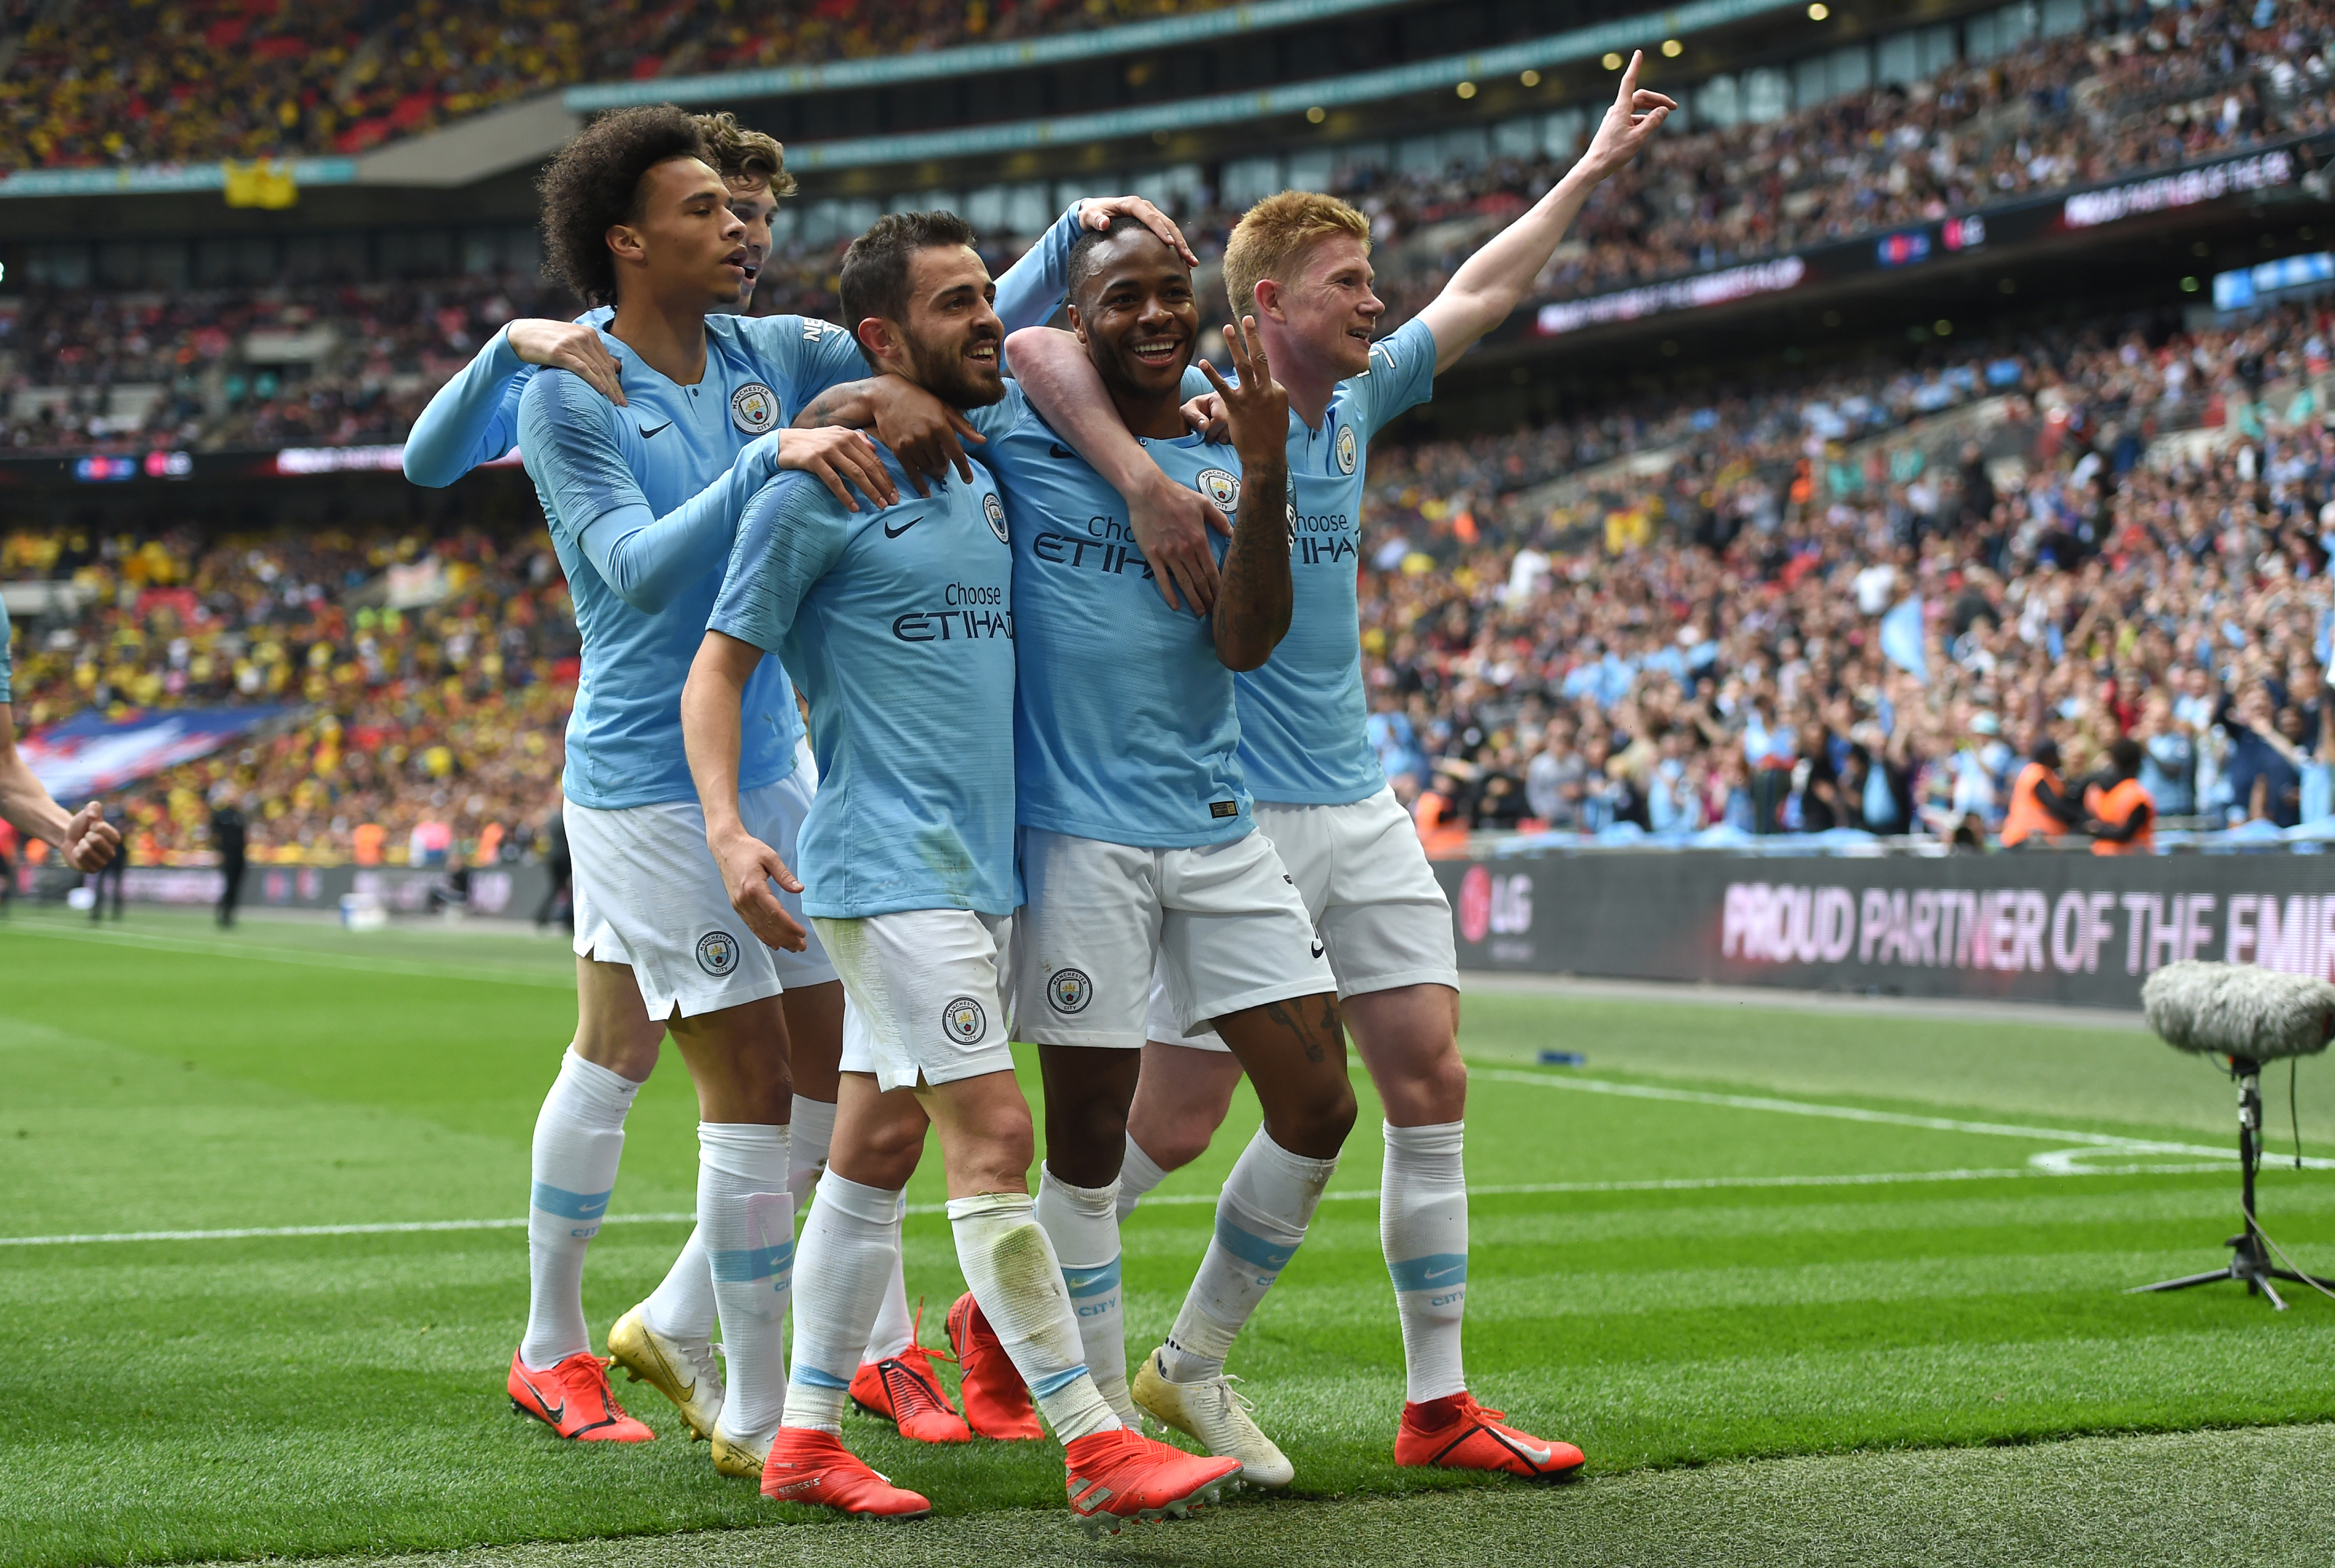 Barcelona and Real Madrid join chase for Manchester City Star - Everything Barca